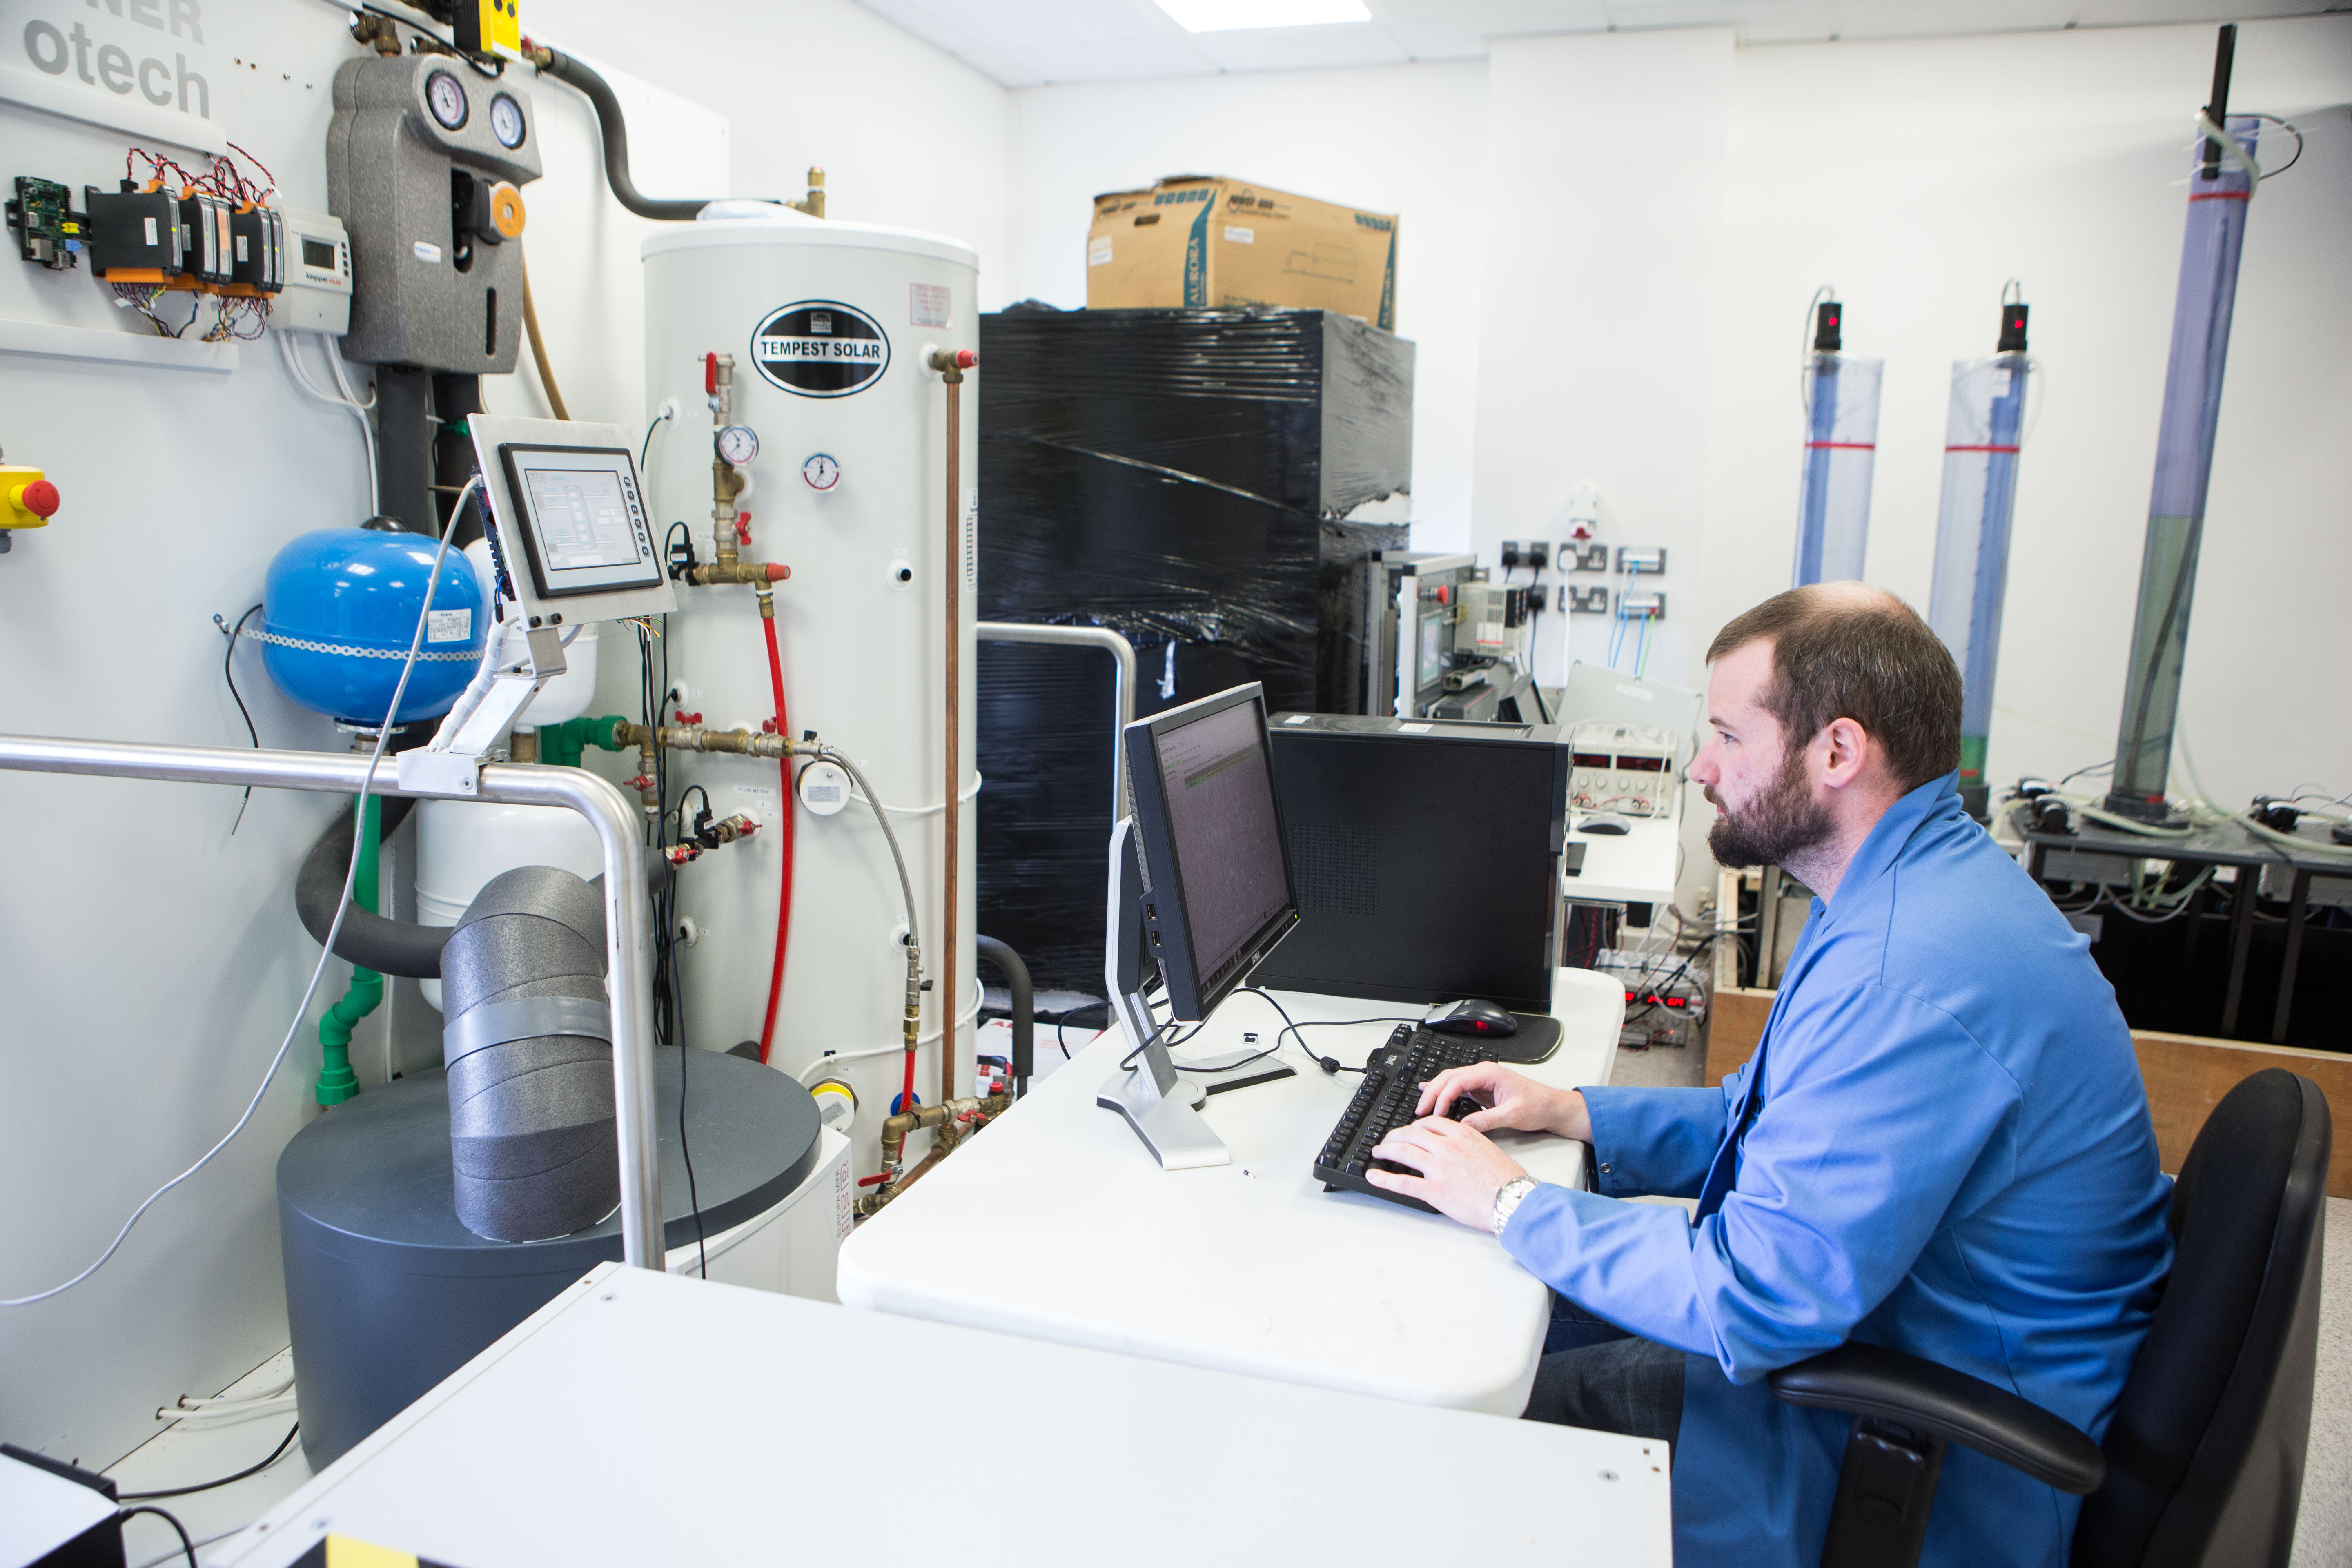 Nimbus Centre researcher working in lab